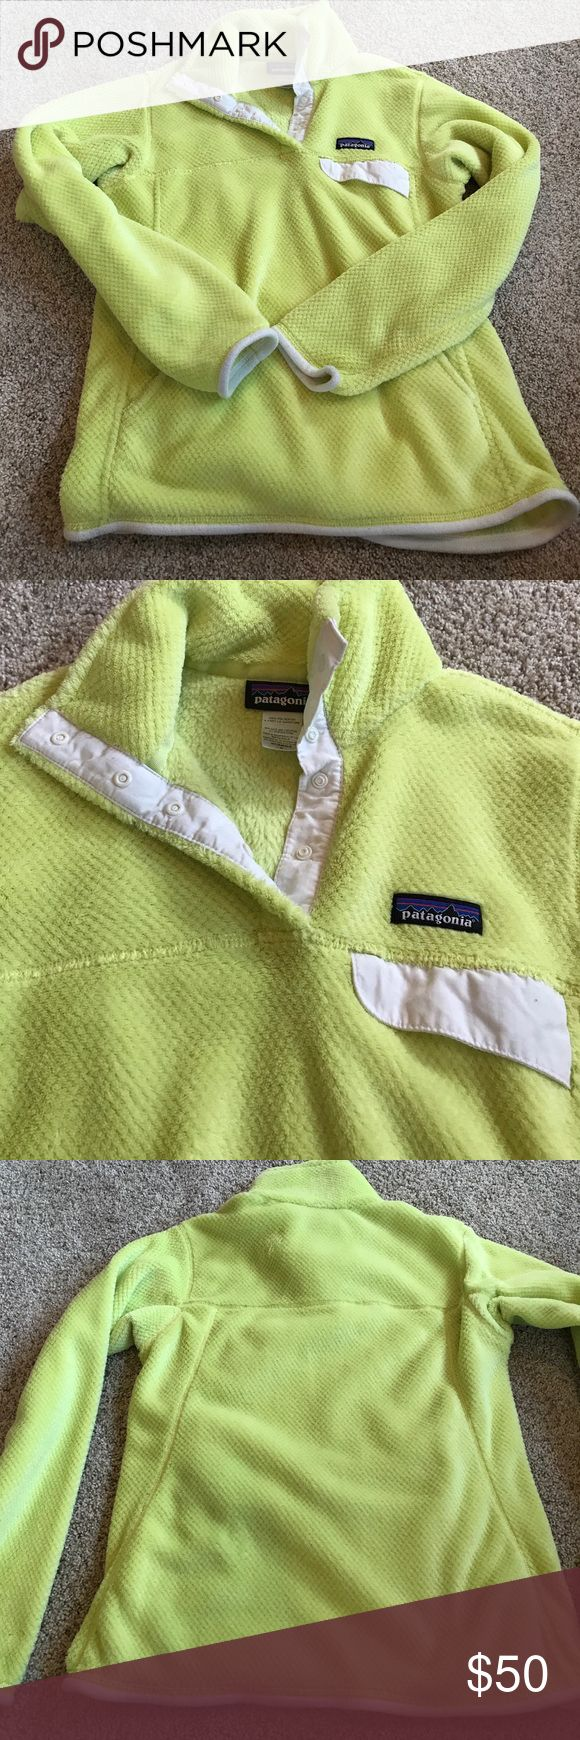 Patagonia Pullover Women's Small, bright yellow, lightly worn! No signs of wear! Patagonia Jackets & Coats